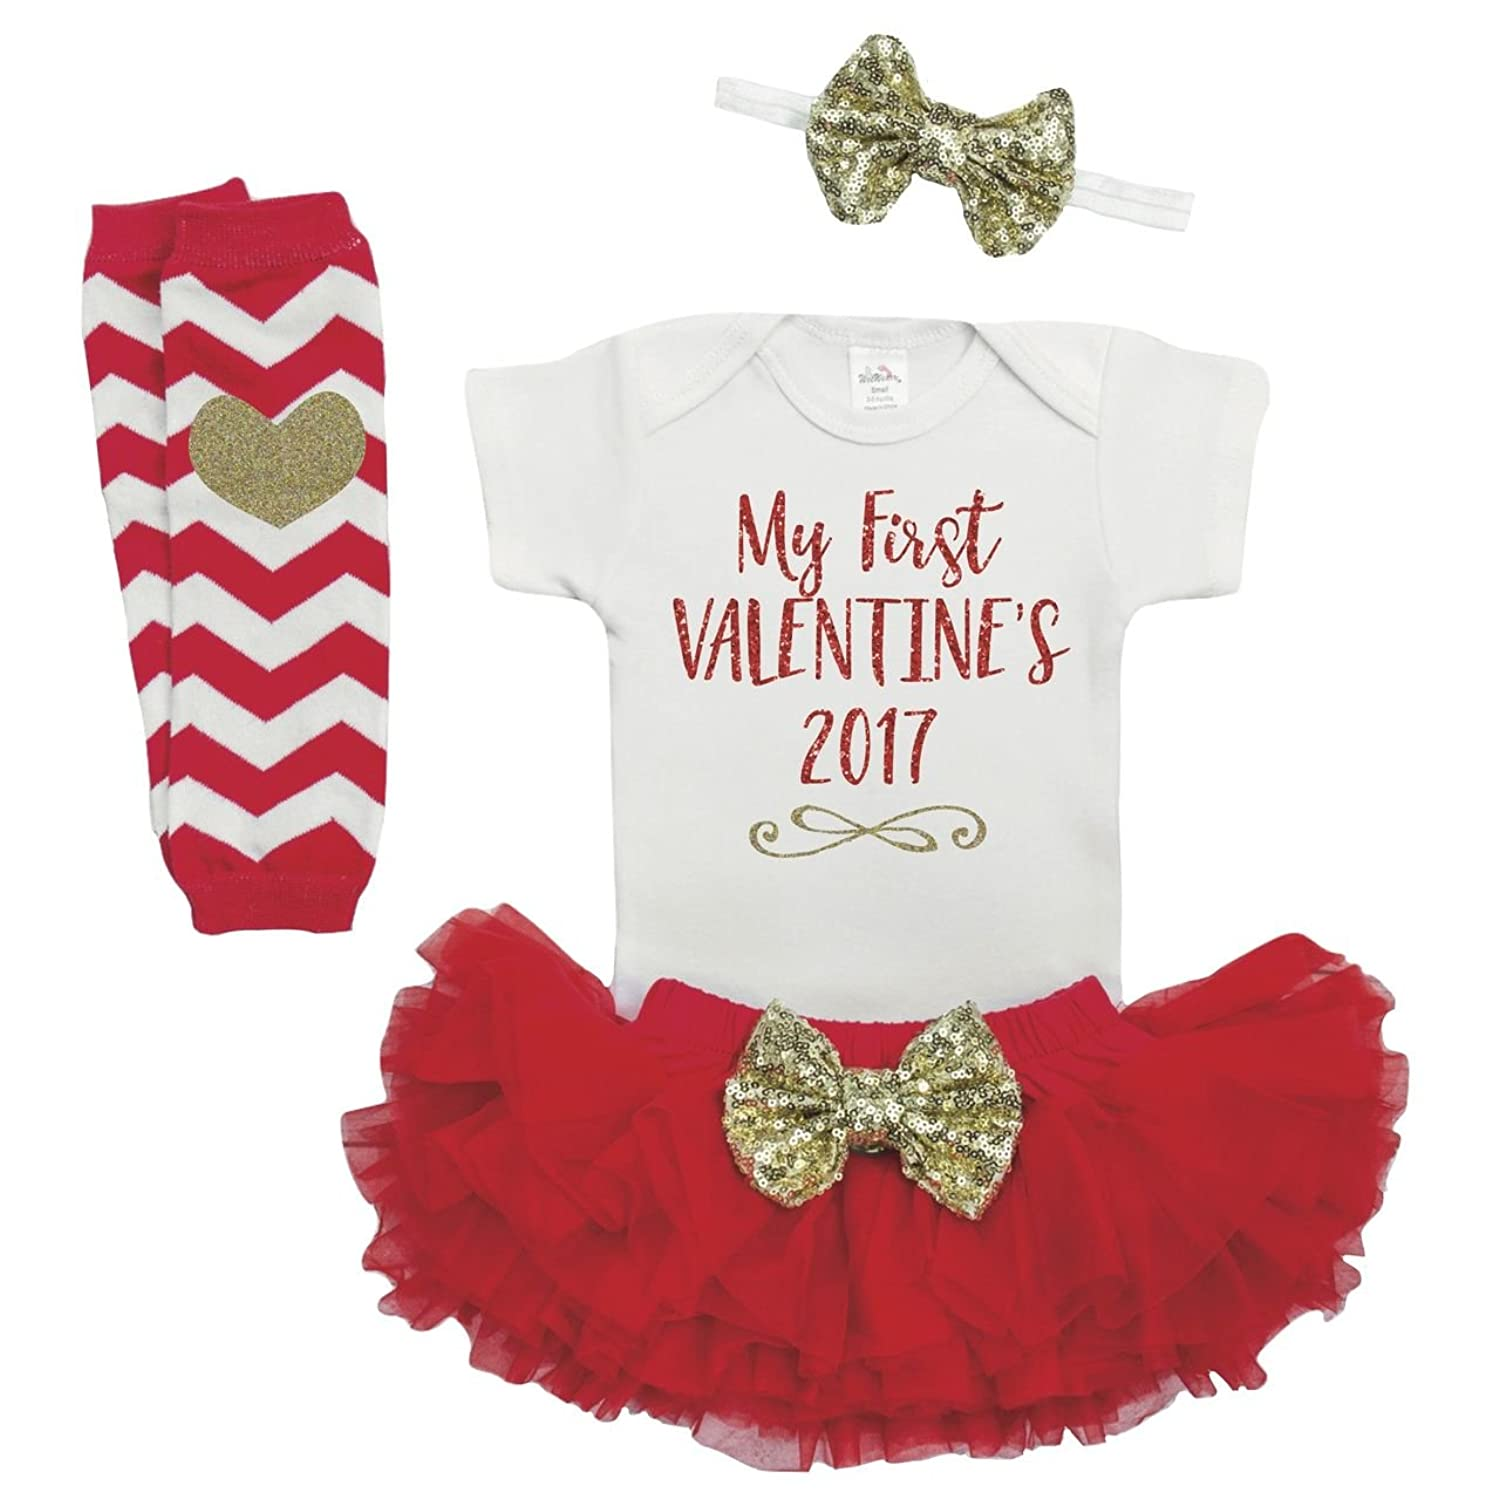 amazoncom baby girl valentines outfit first valentines day outfit girl newborn valentines clothing